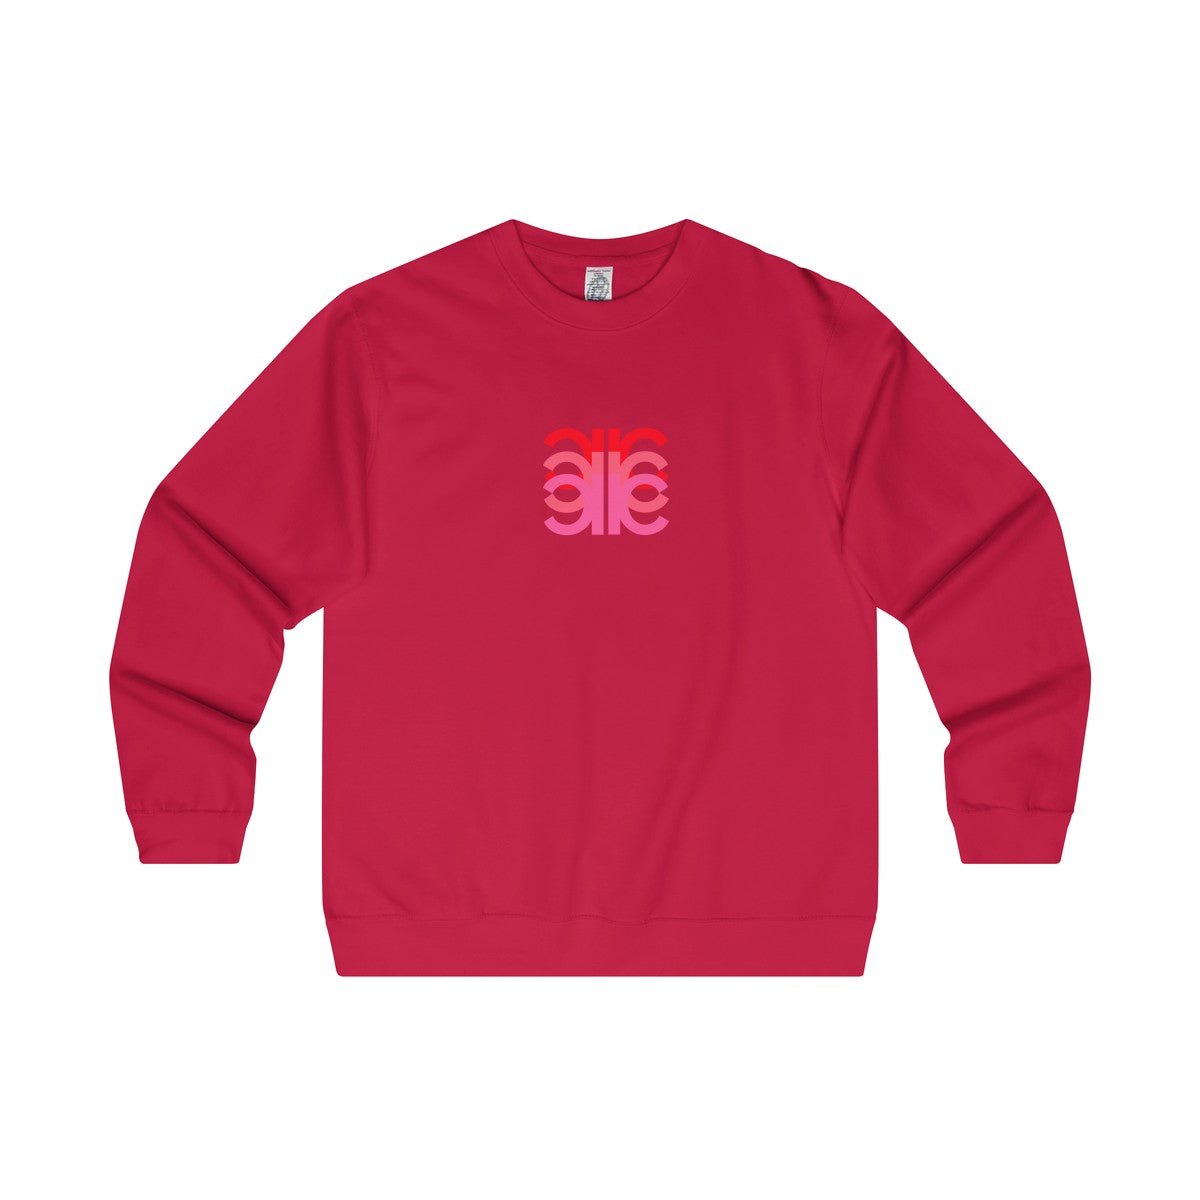 The Hip-Hop Head Crewneck Sweatshirt